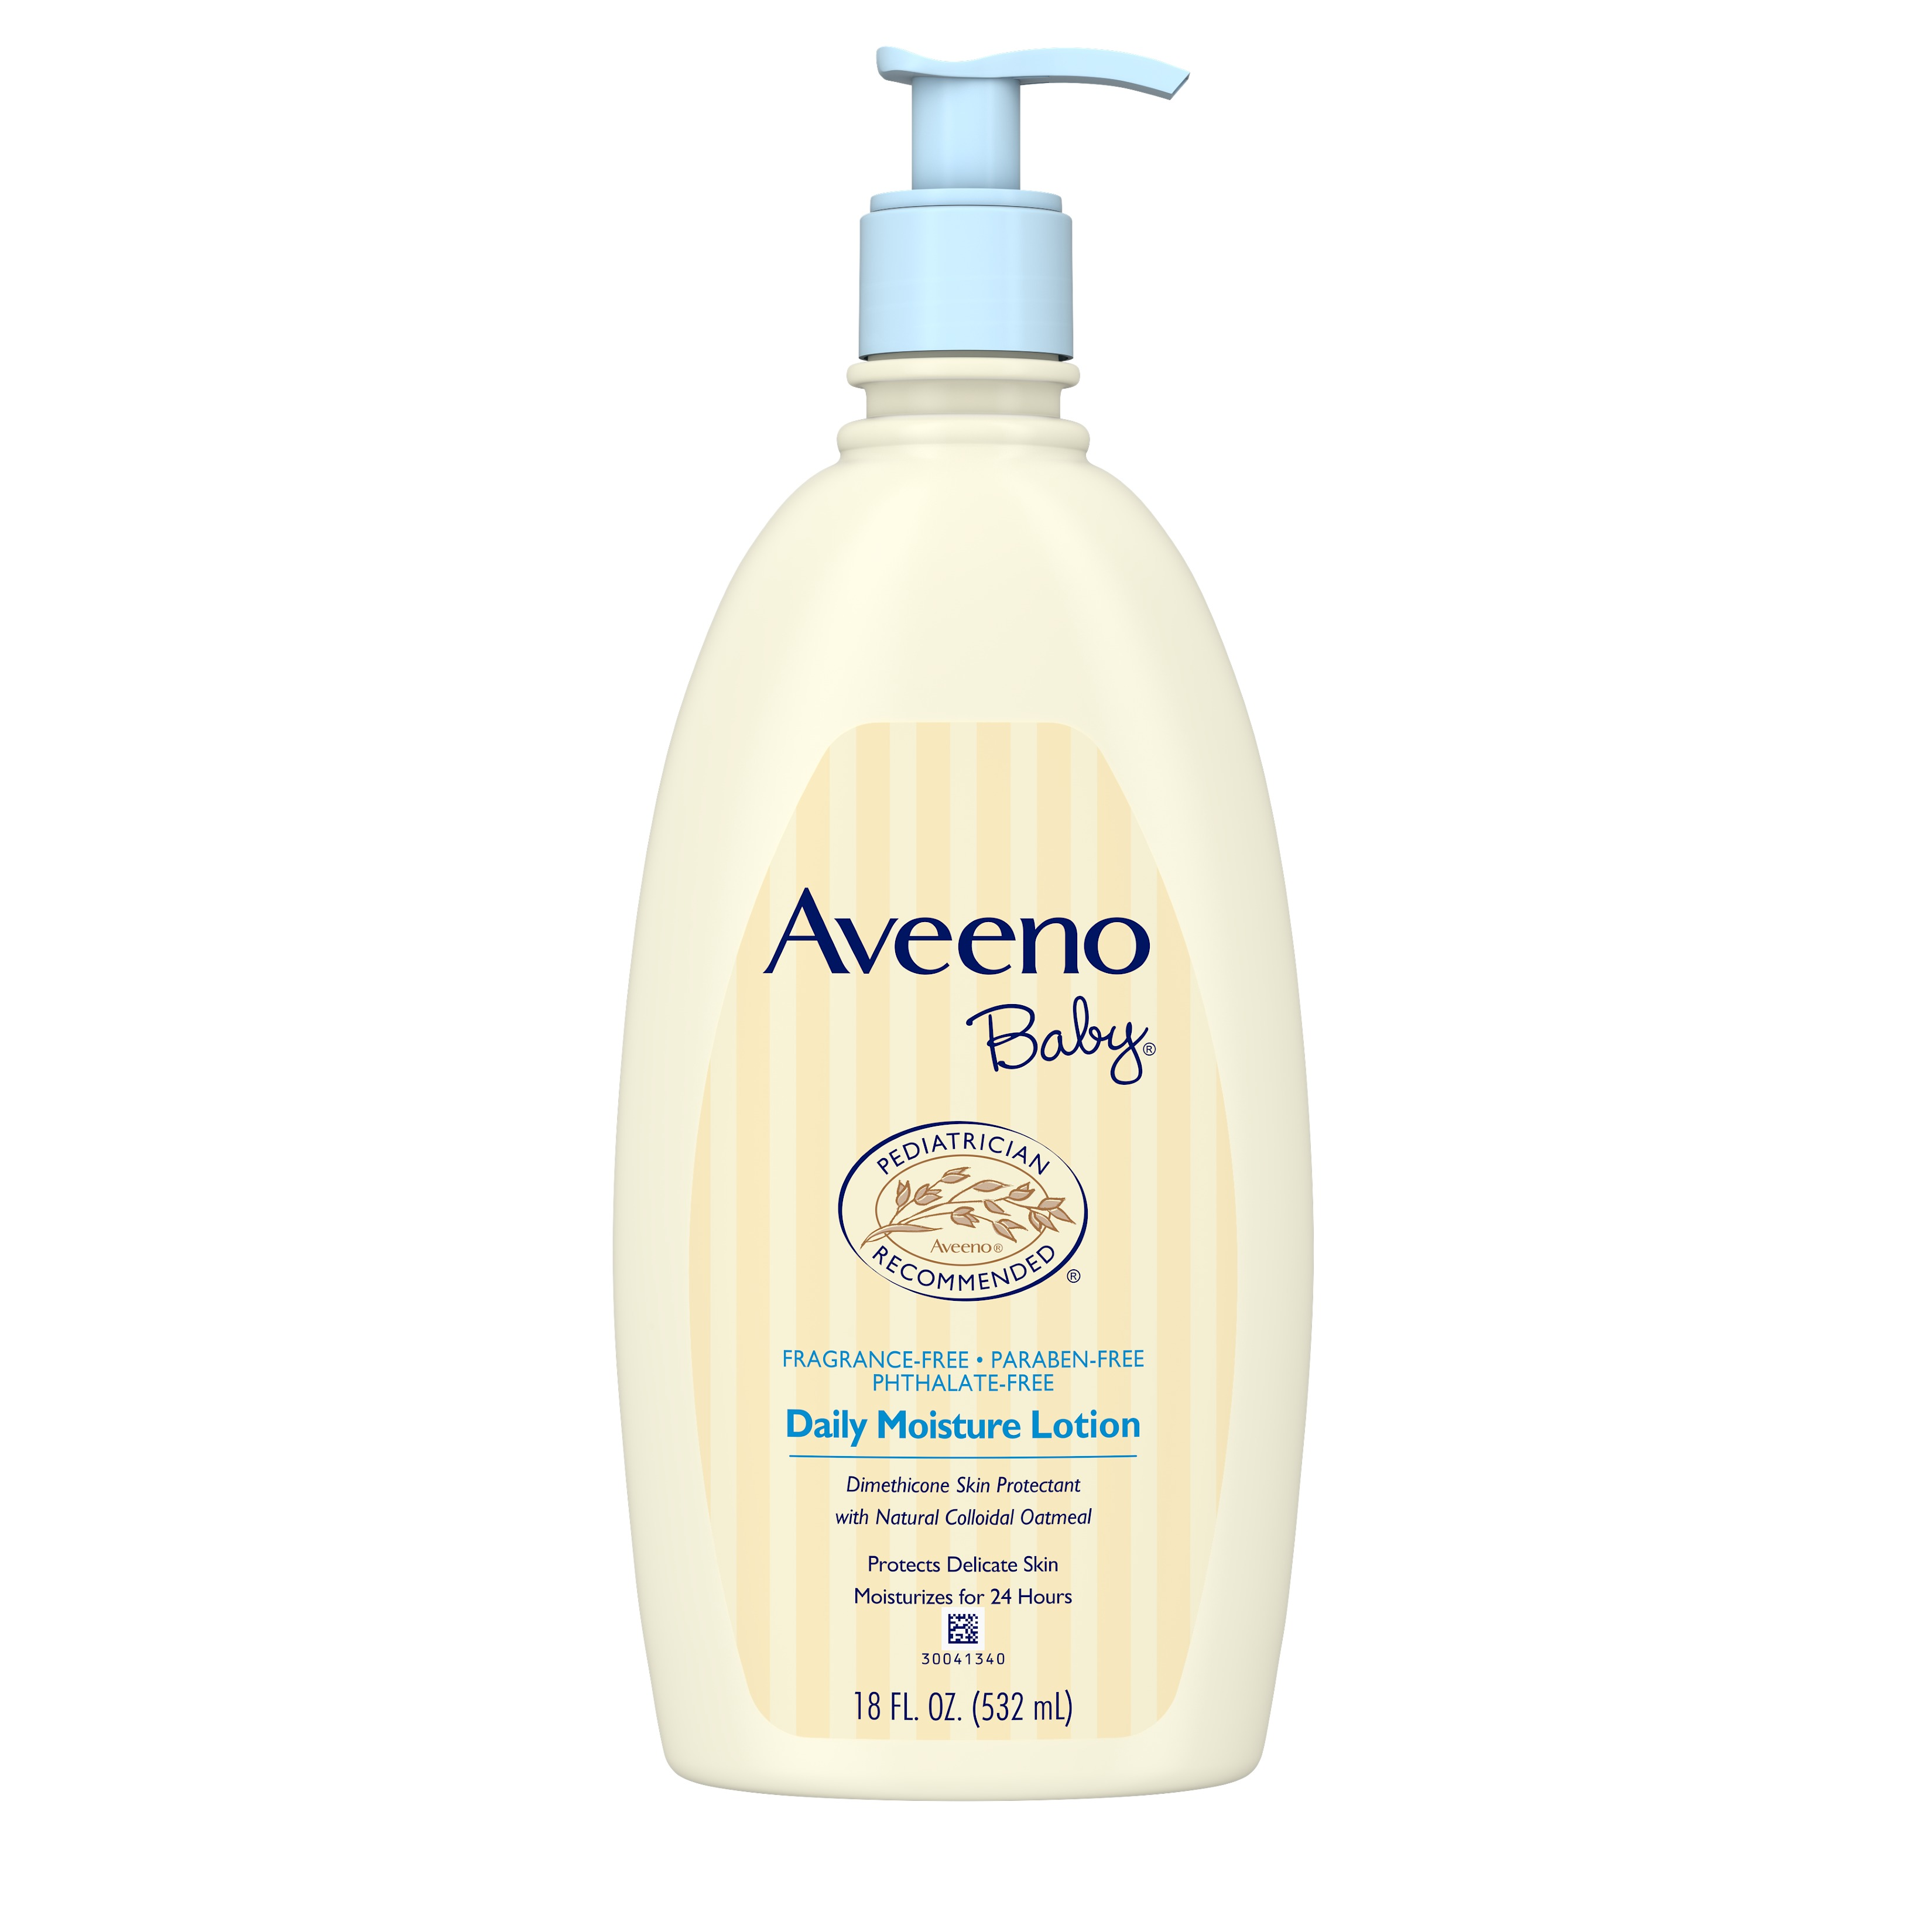 Aveeno Baby Daily Moisture Lotion With Natural Colloidal